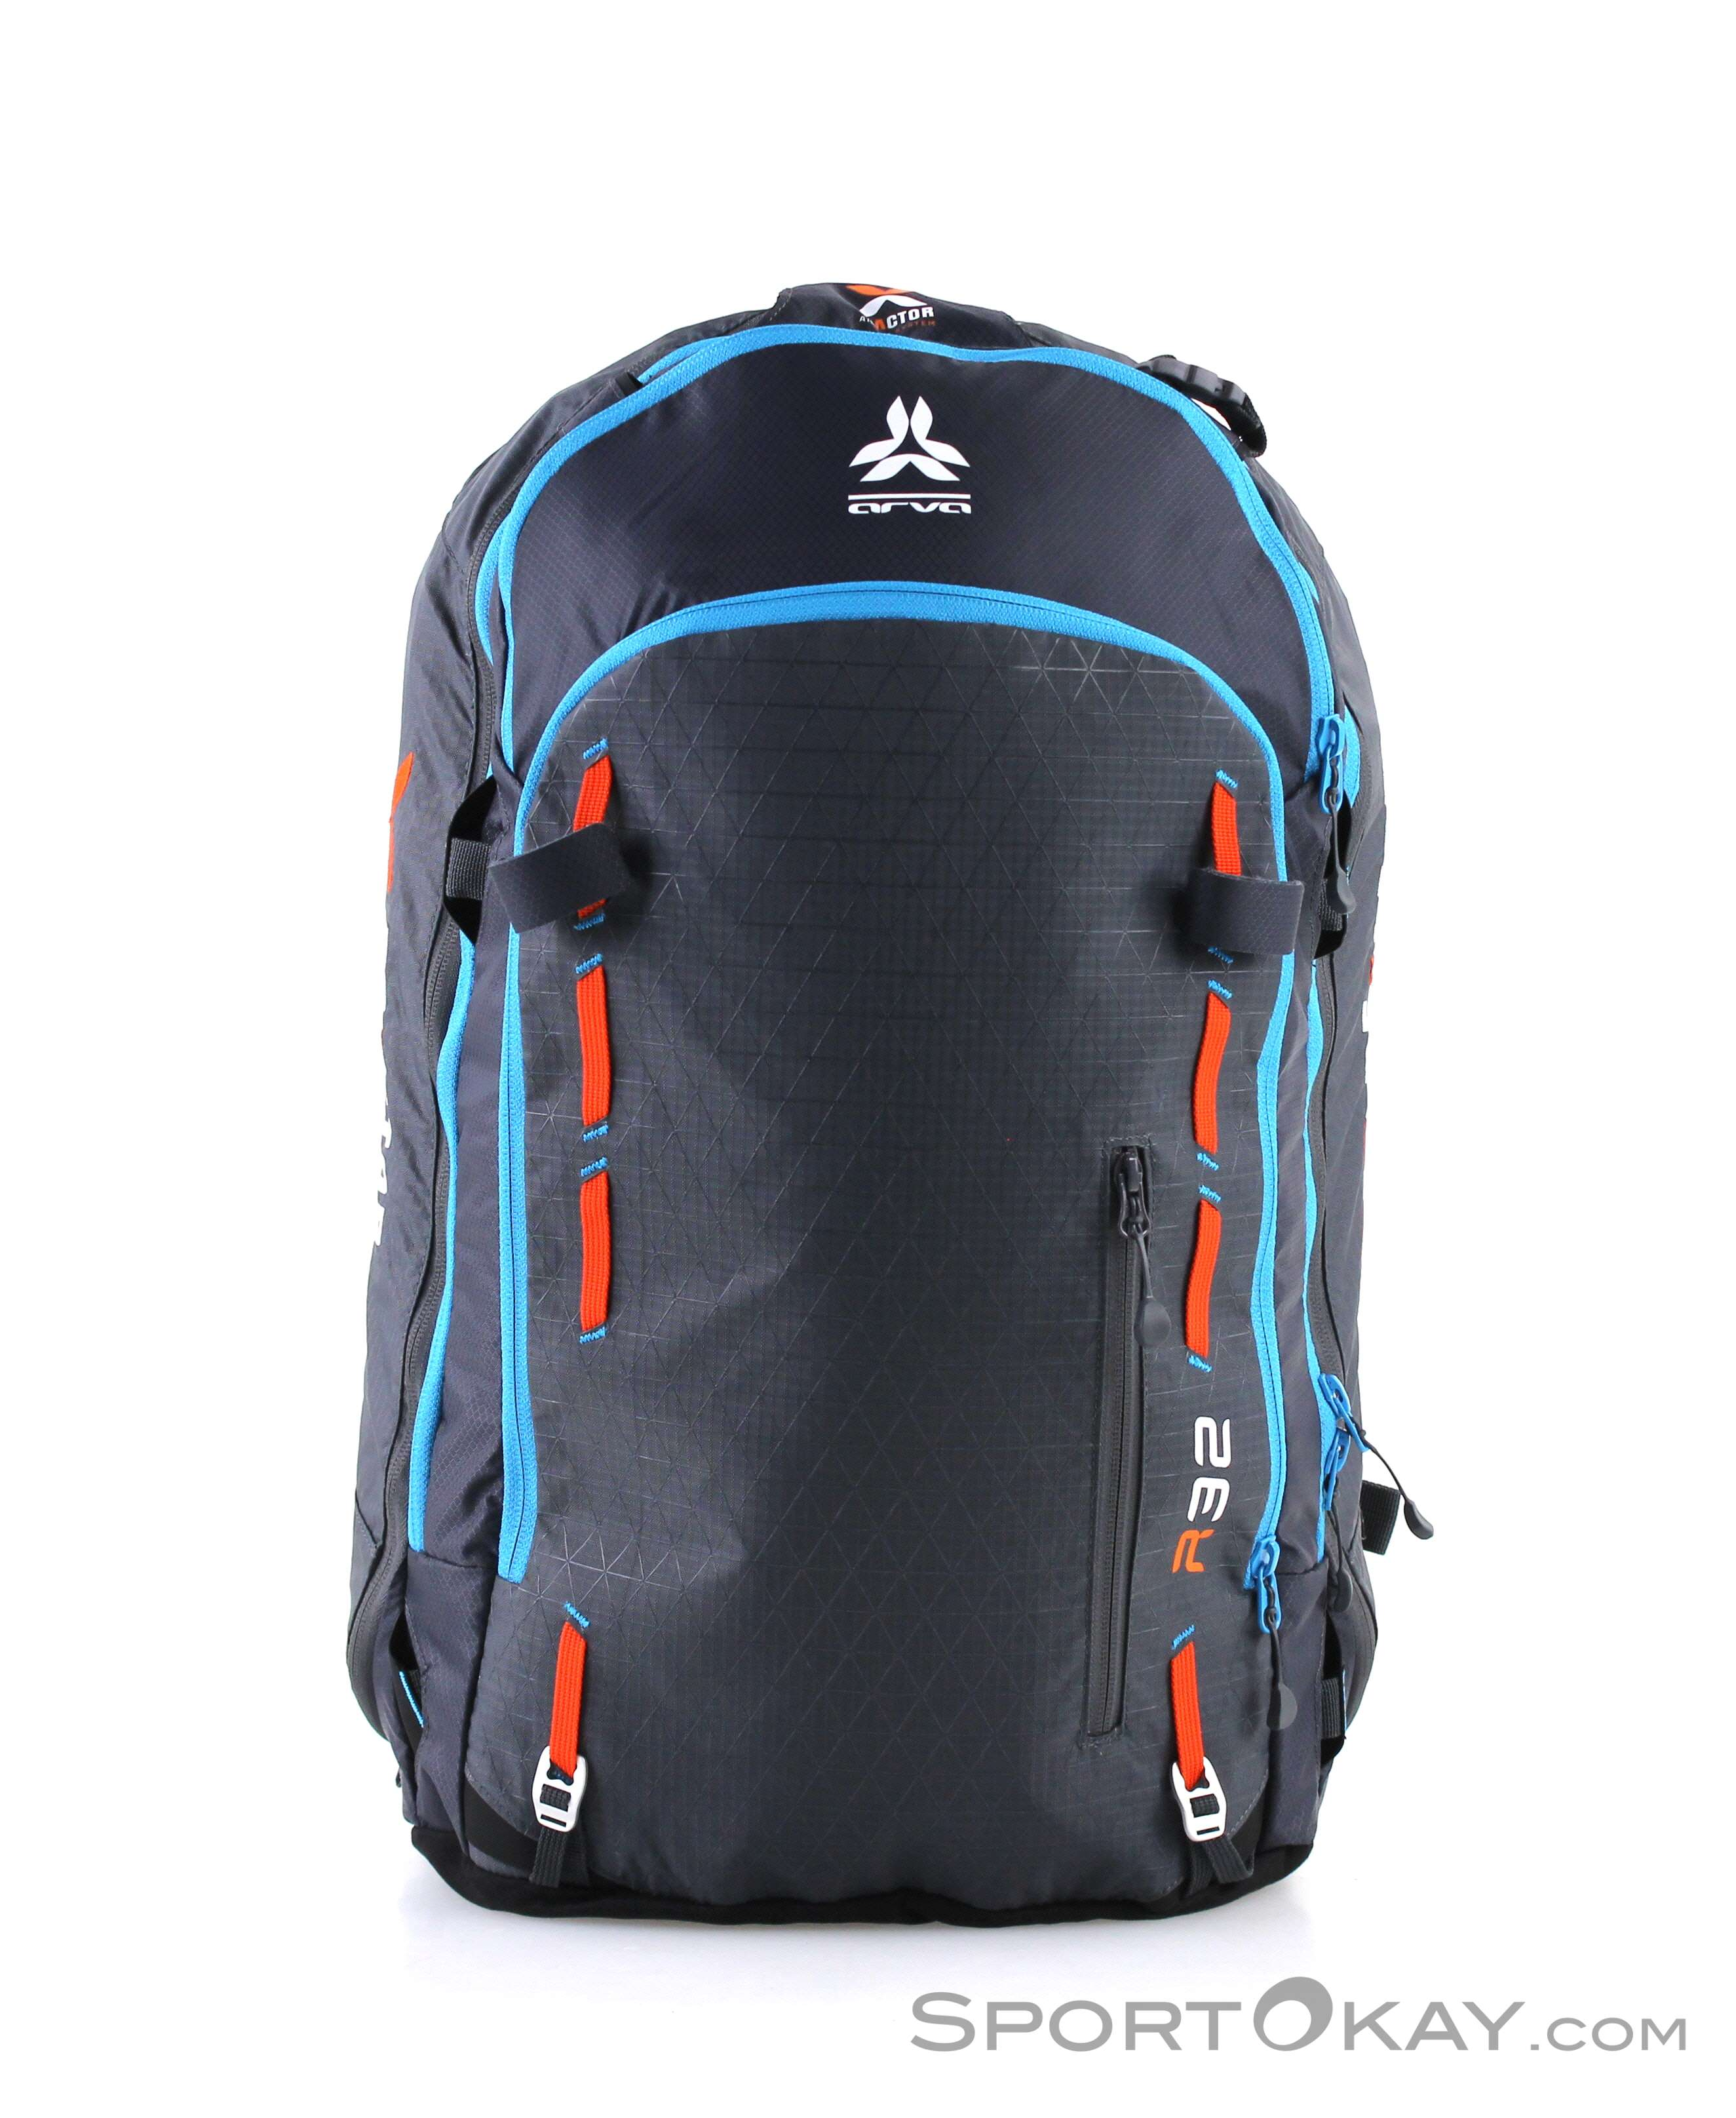 Arva Reactor R 32l Airbag Backpack without Cartridge